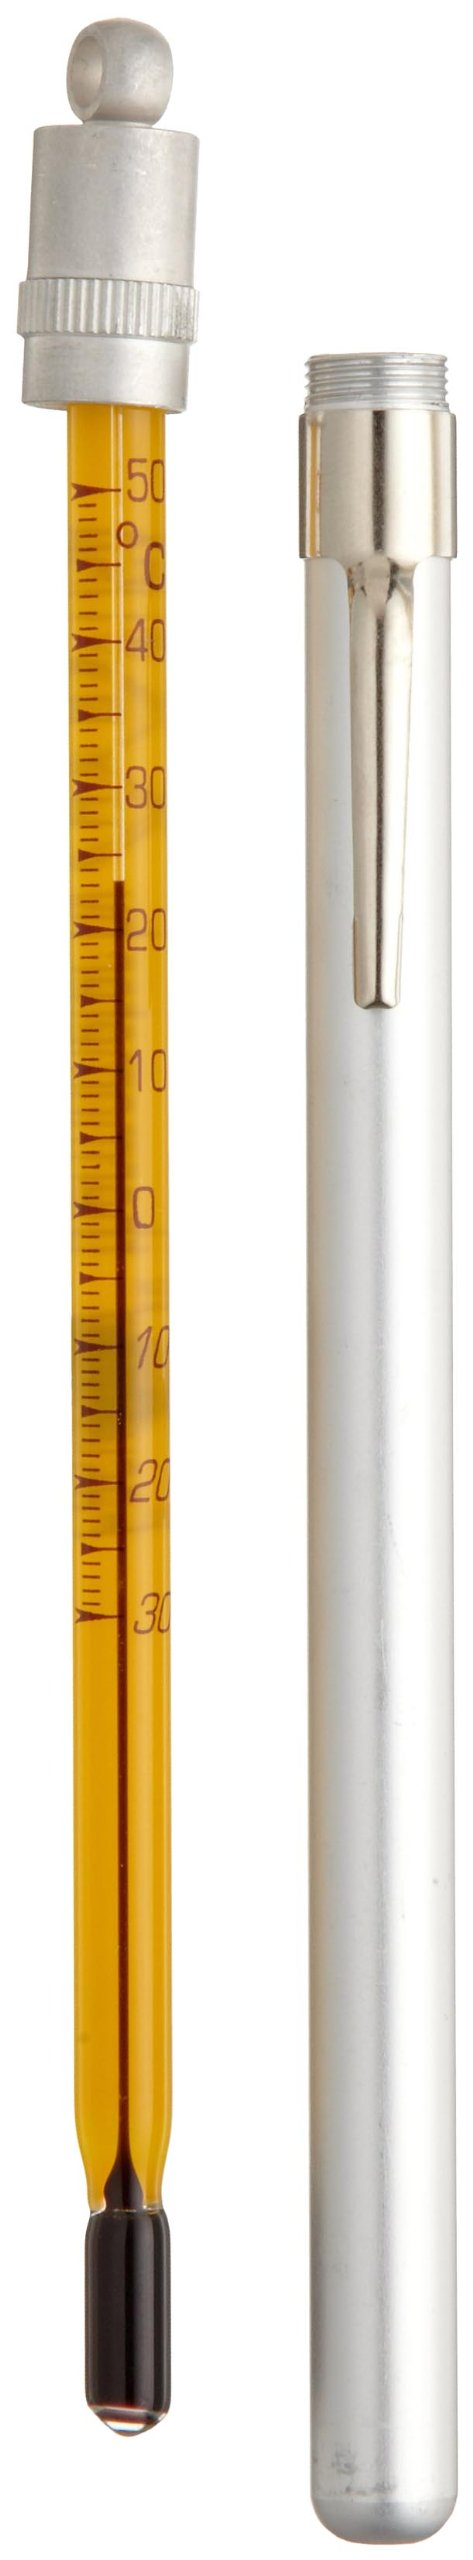 H-B Easy-Read Pocket Liquid-in-Glass Thermometer; -30 to 50C, Closed Metal Case, Environmentally Friendly (B60370-0400) by SP Scienceware